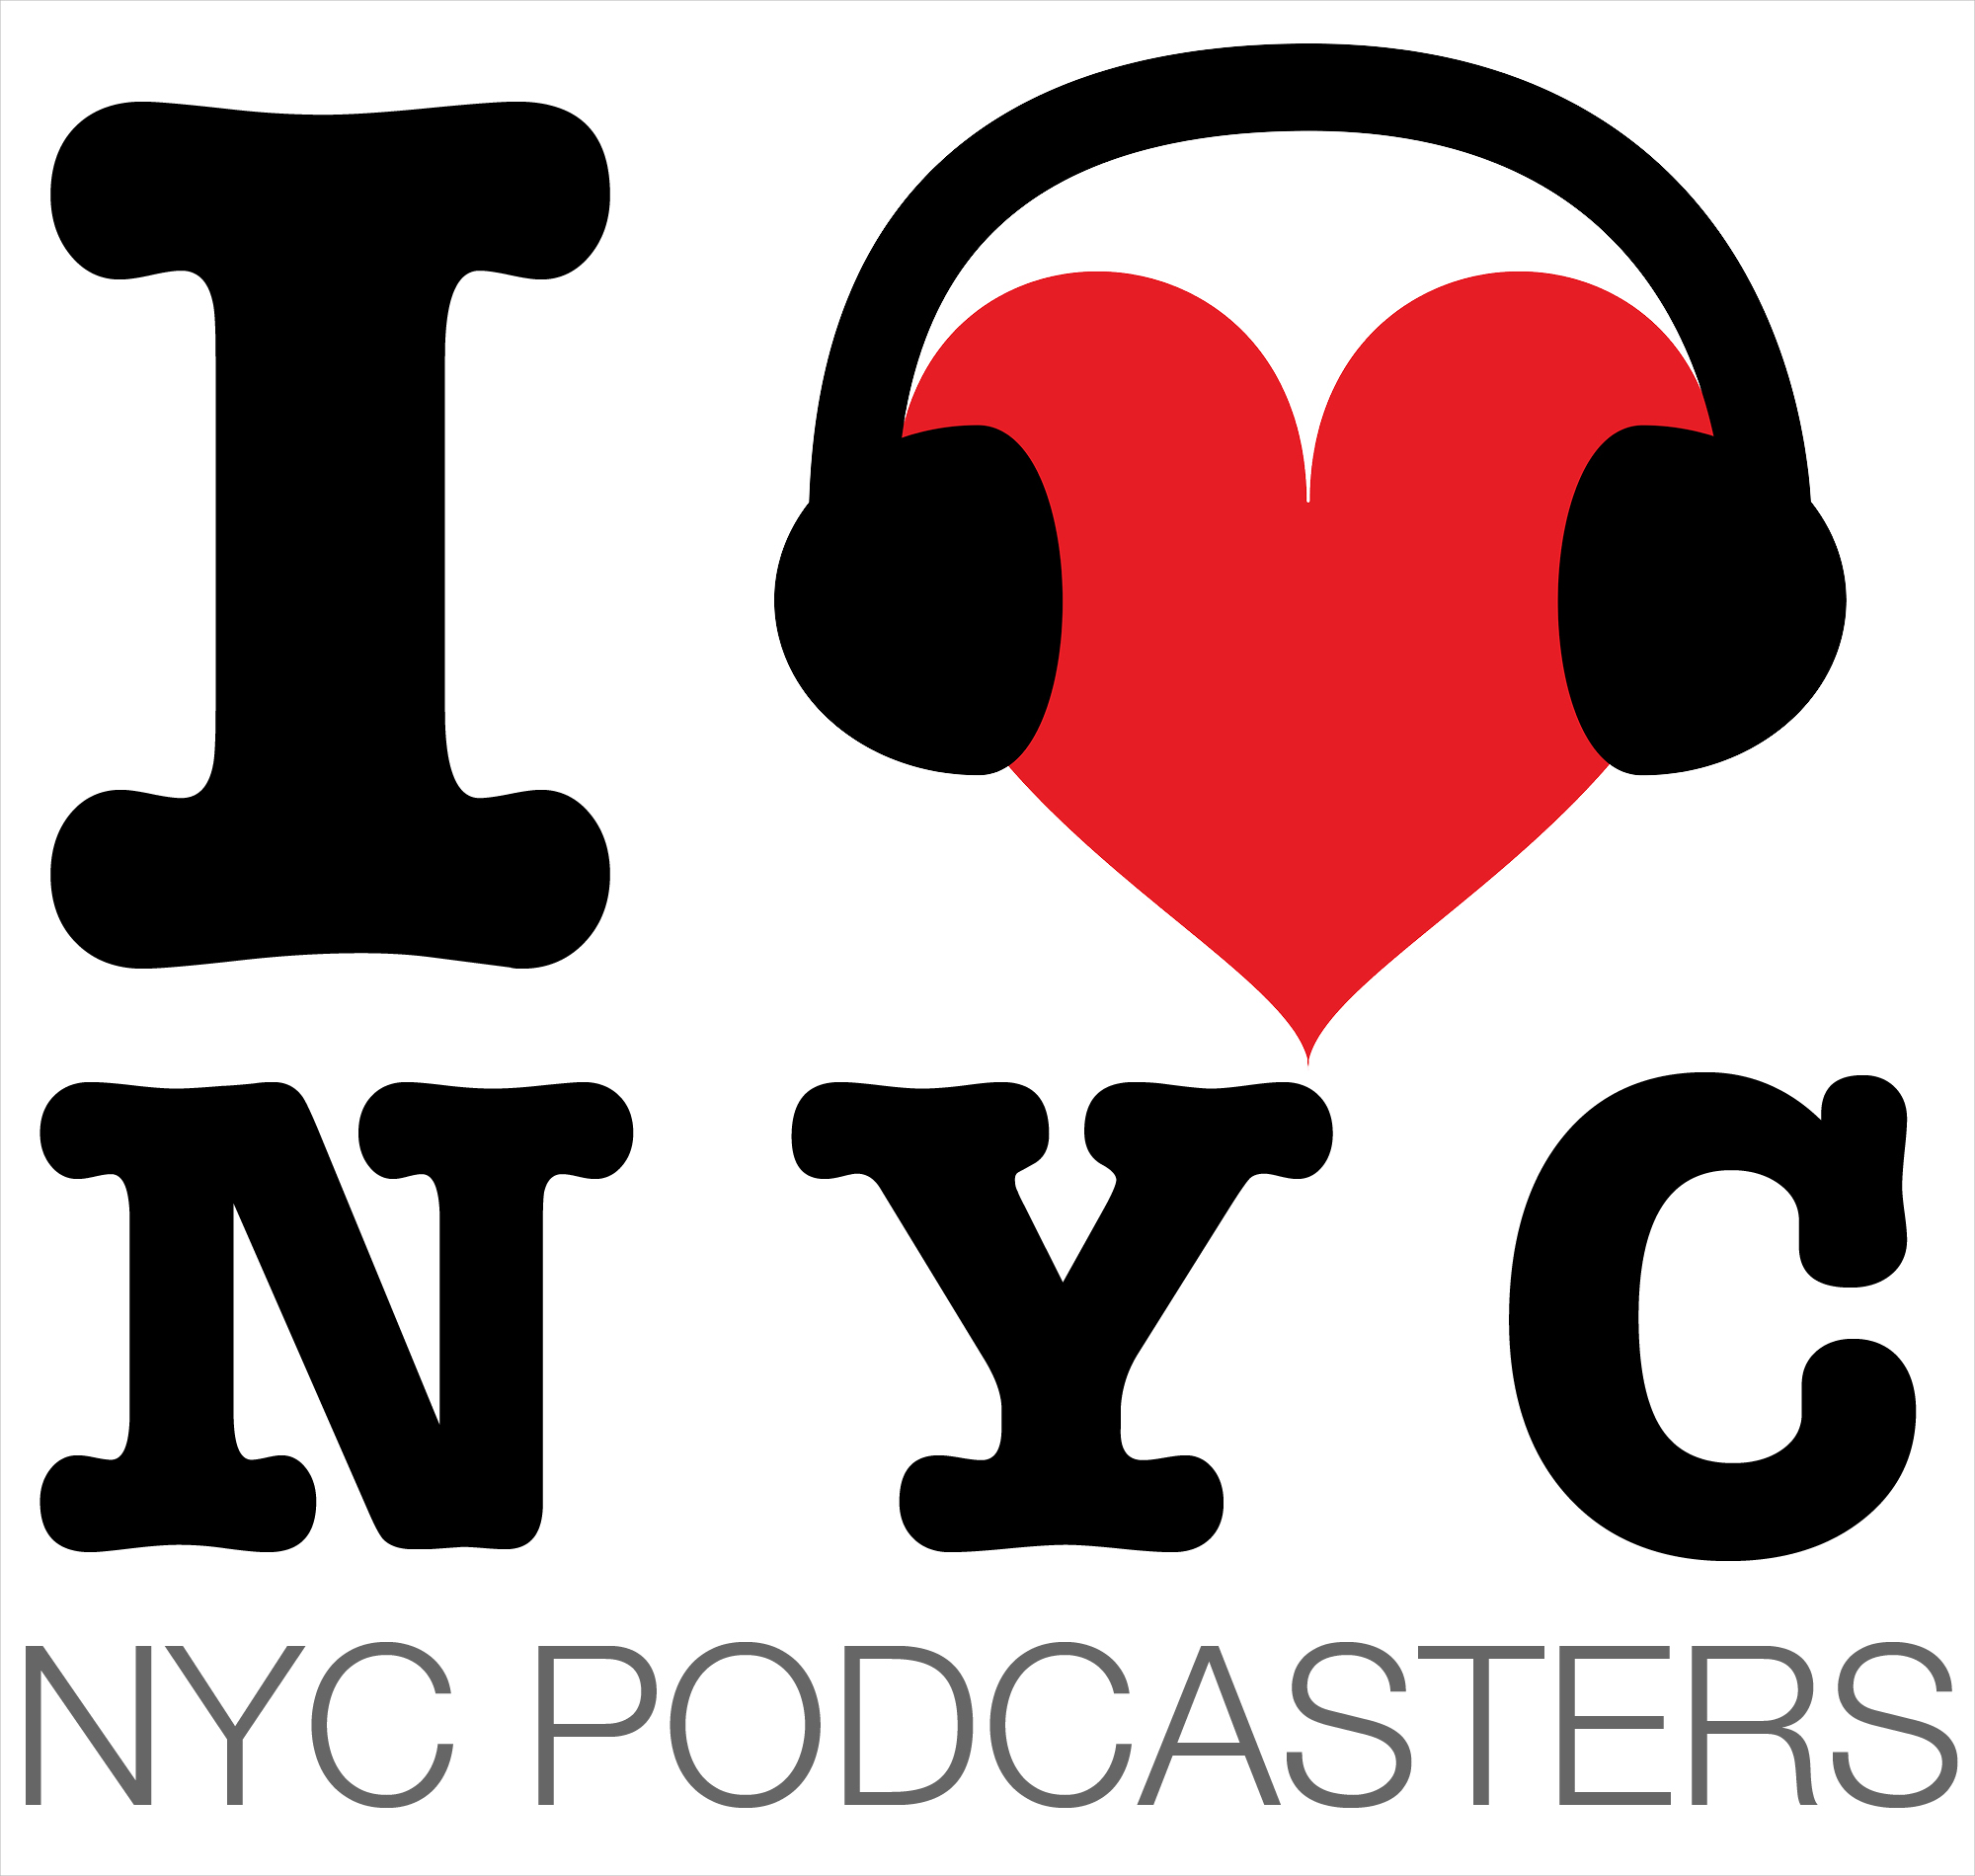 NYC Podcasters